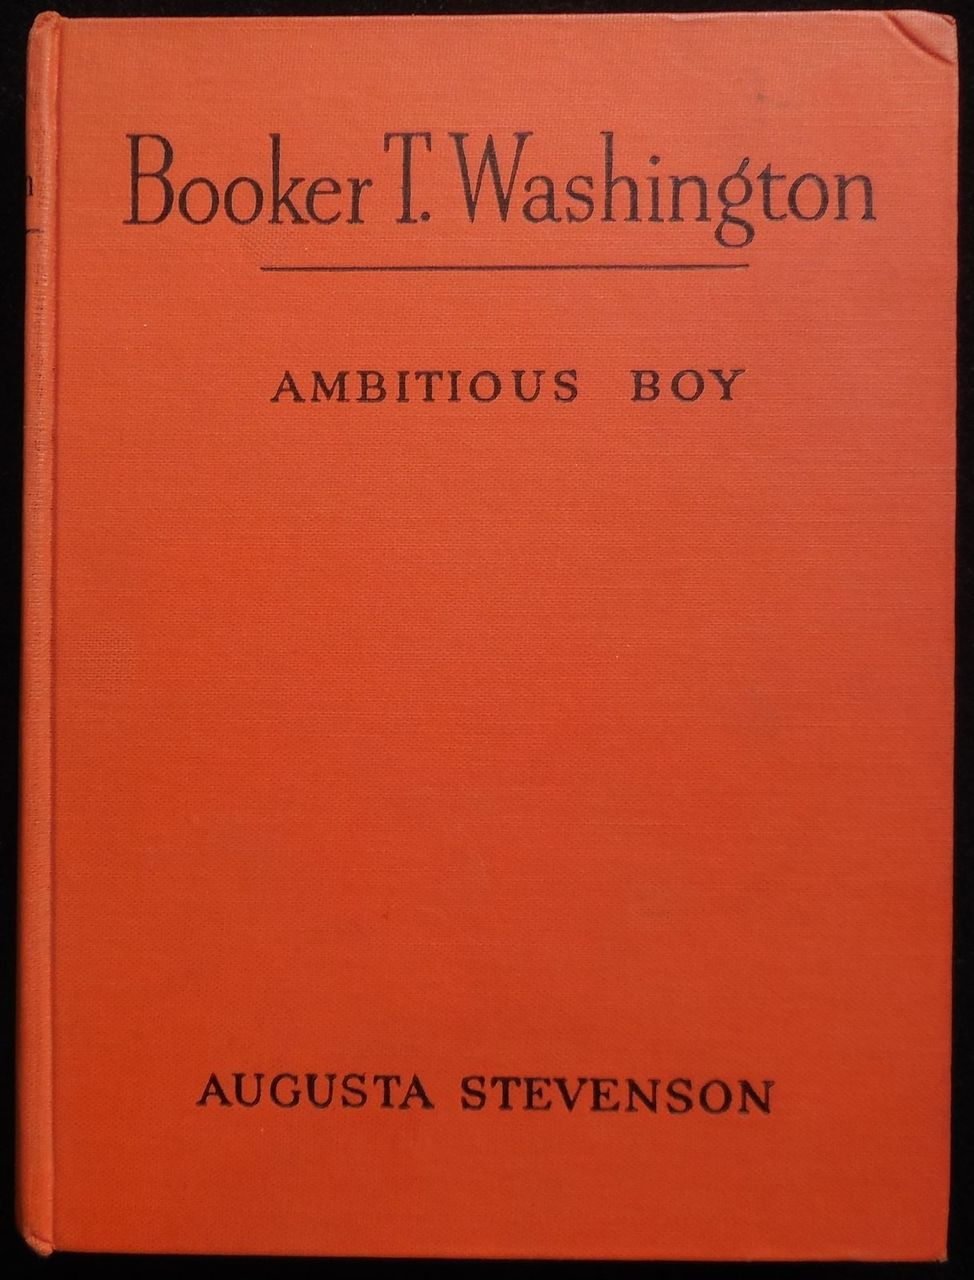 BOOKER T. WASHINGTON: AMBITIOUS BOY, by Augusta Stevenson - 1950 [1st Ed]